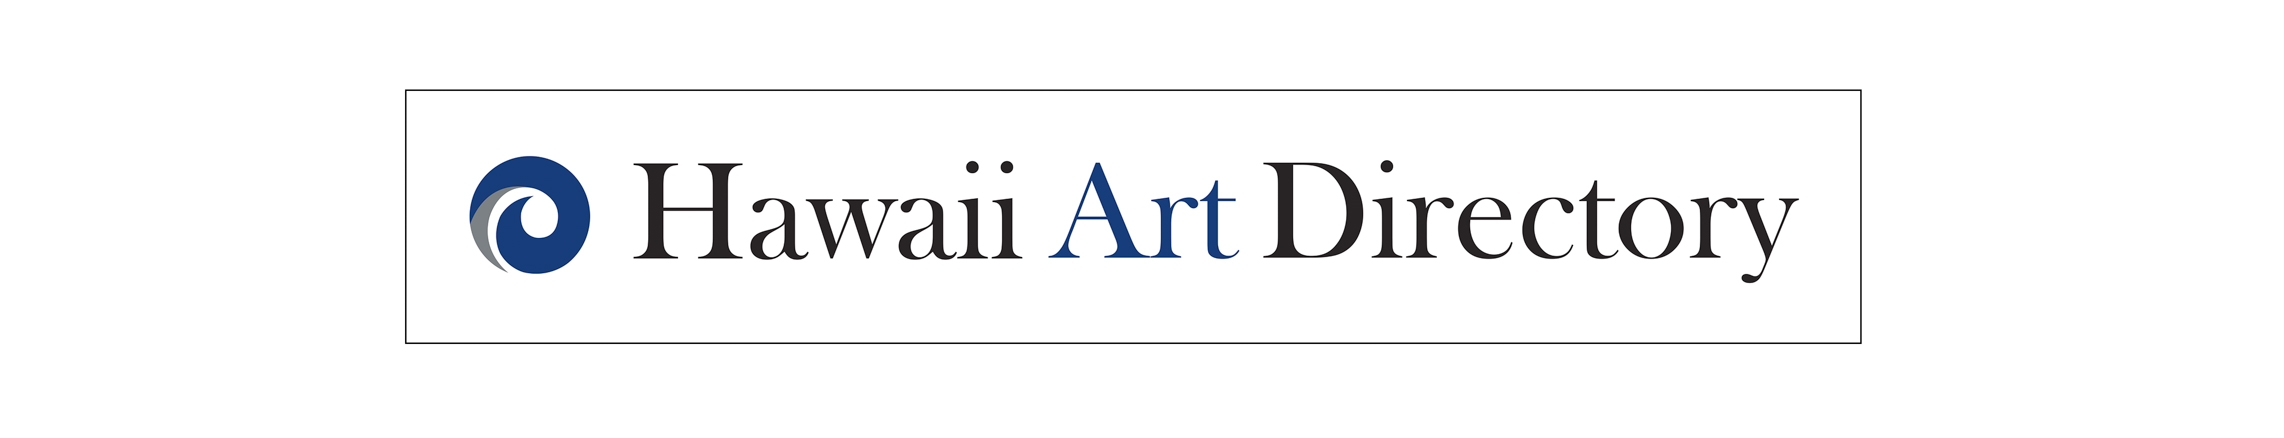 hawaiiartdirectoryweb.jpg